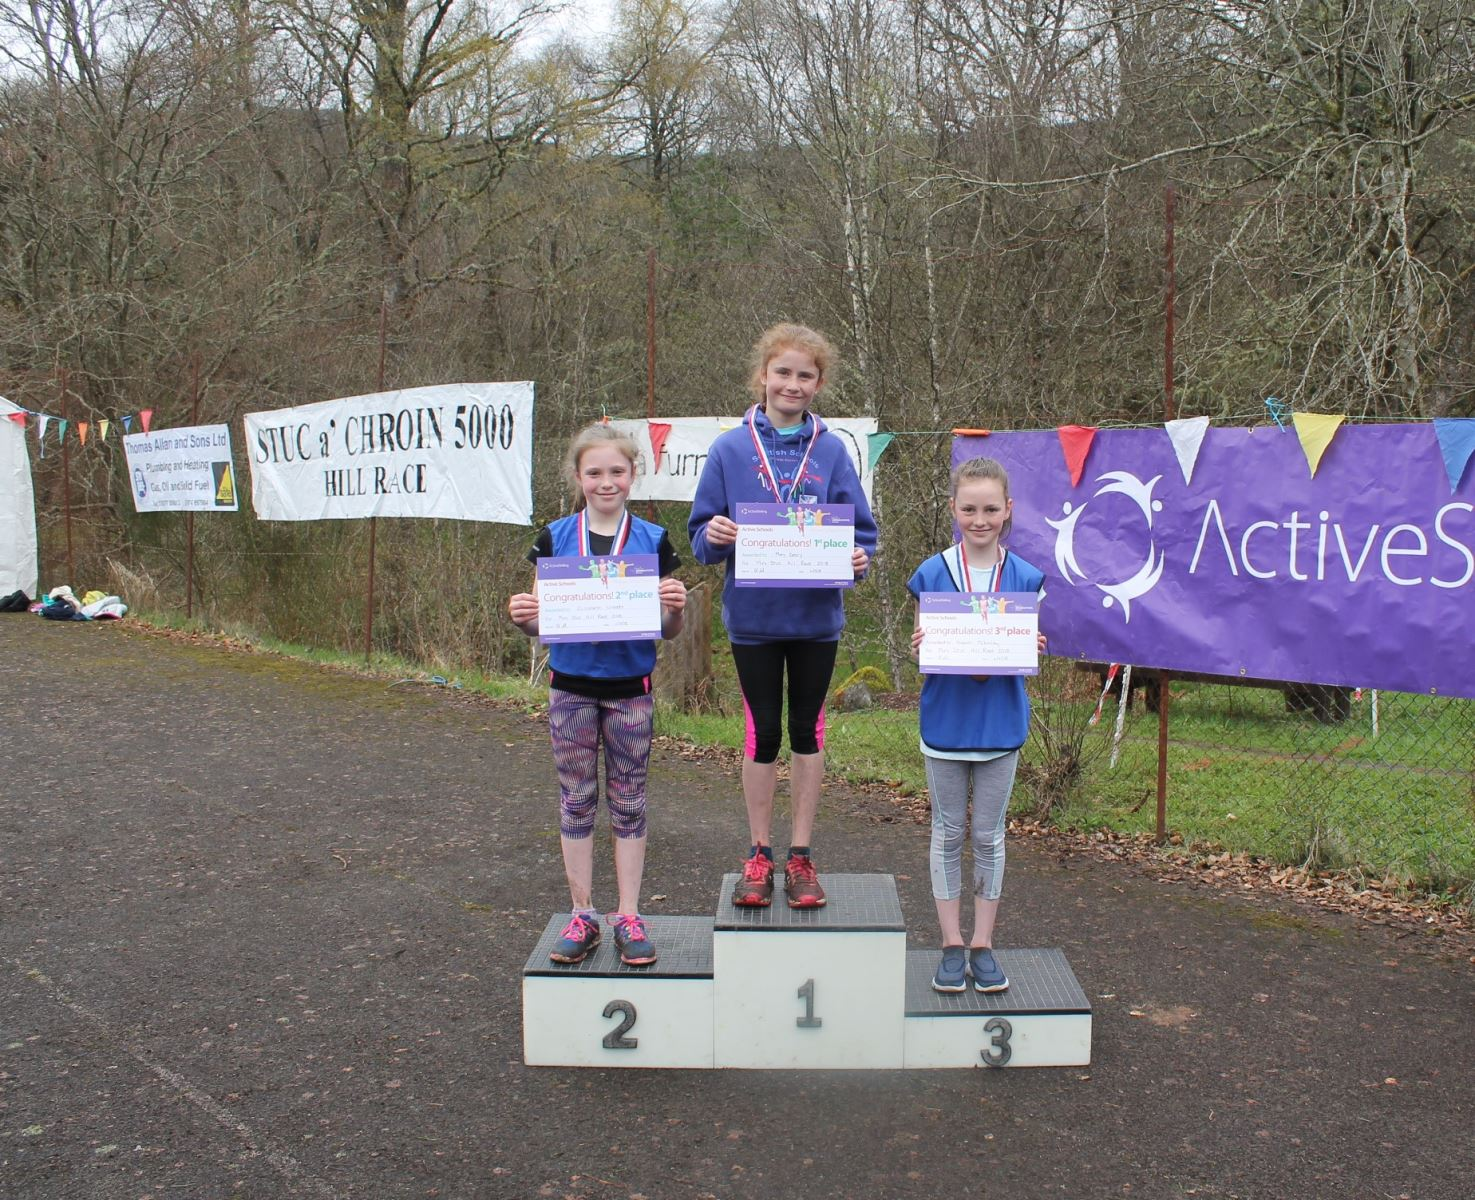 Mini Stuc girls winners